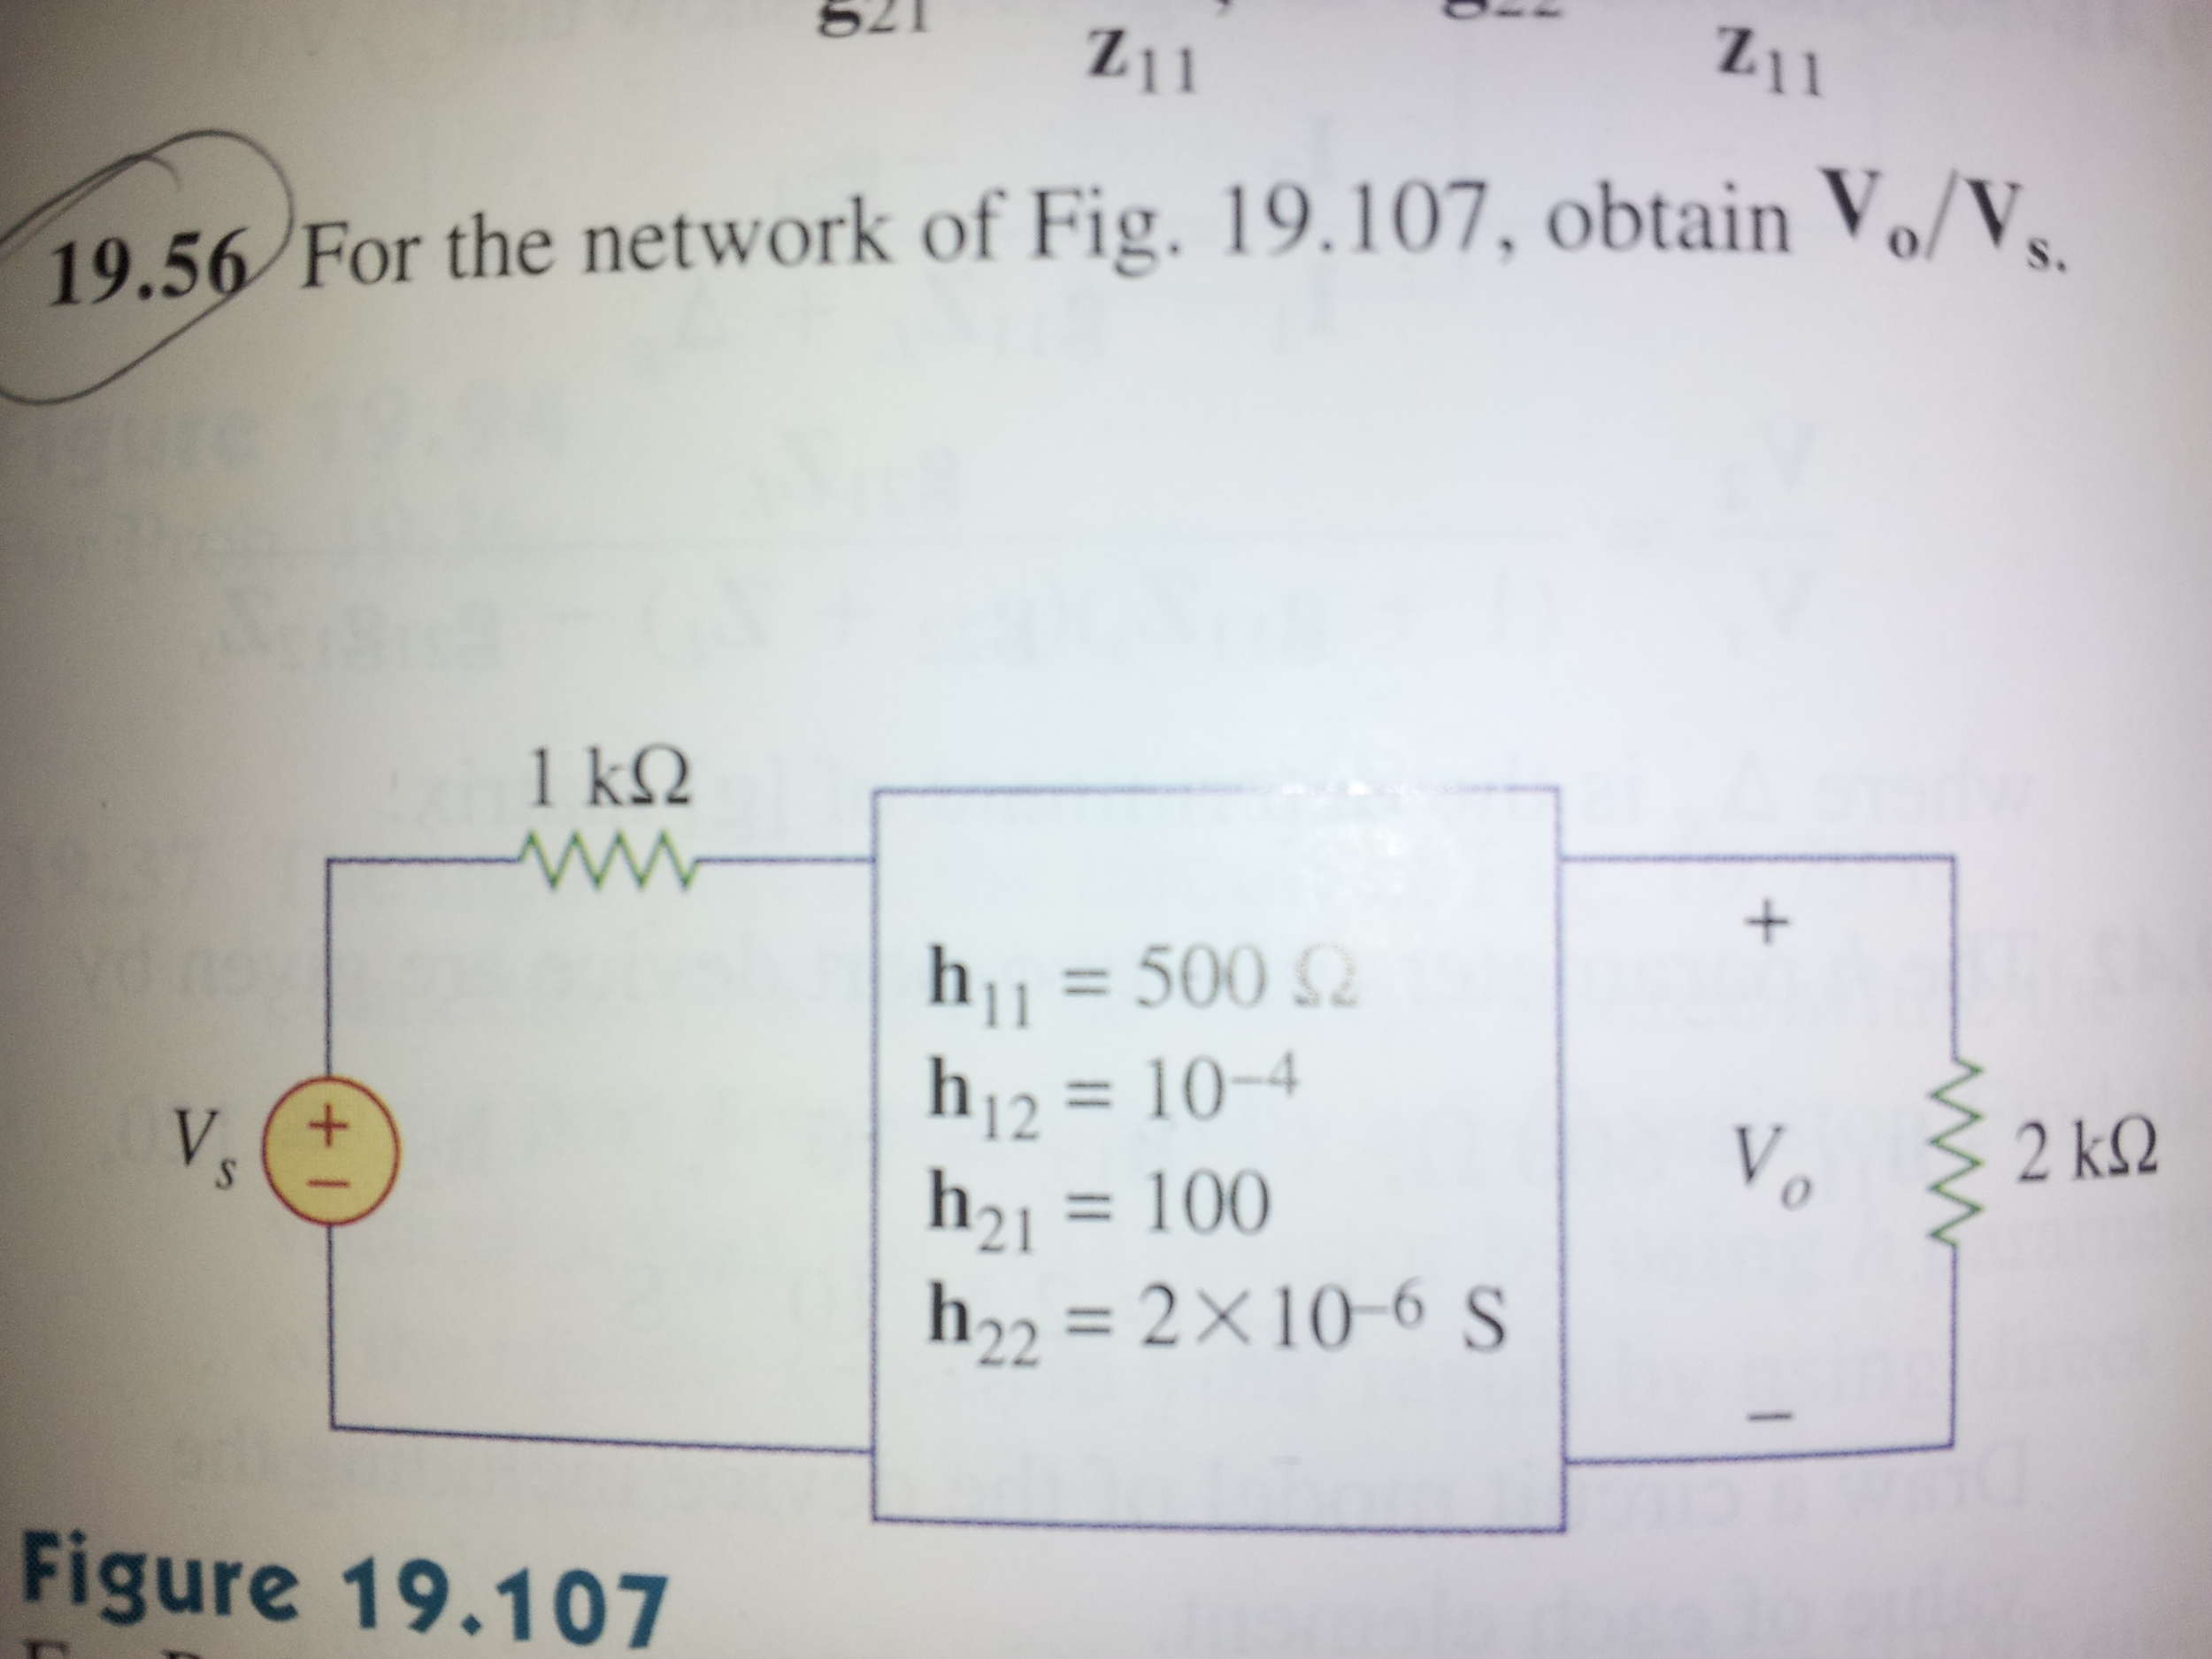 For the network of Fig. 19.107, obtain Vo/Vs.